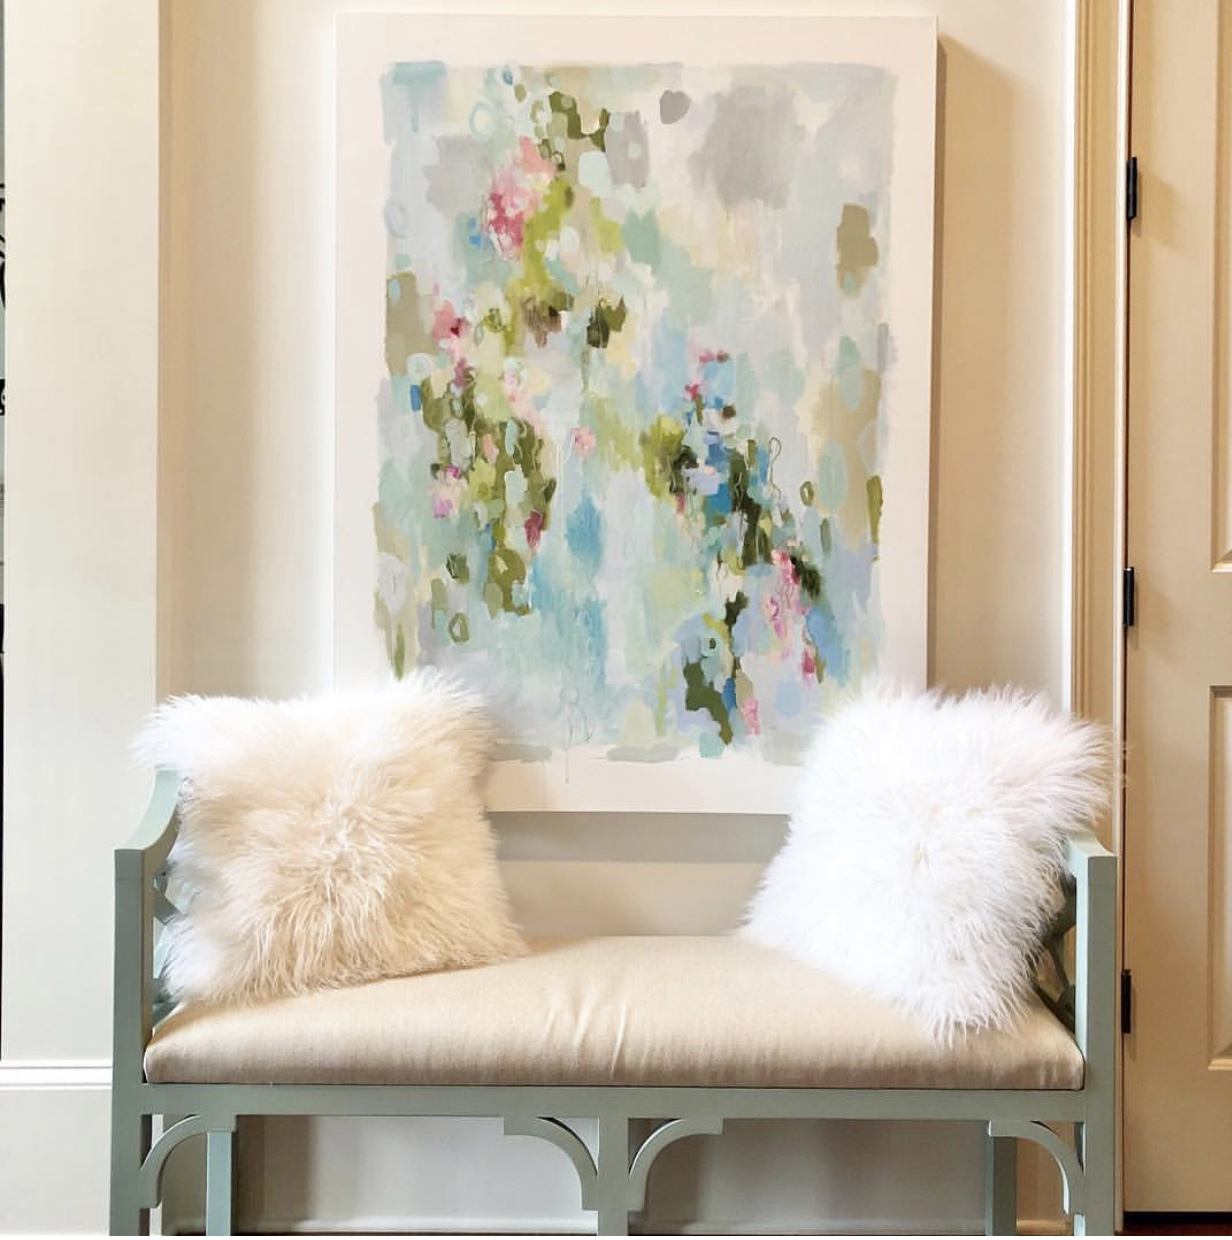 Oil Painting by Kristin Cooney Studio - Comfort and Joy 36x48